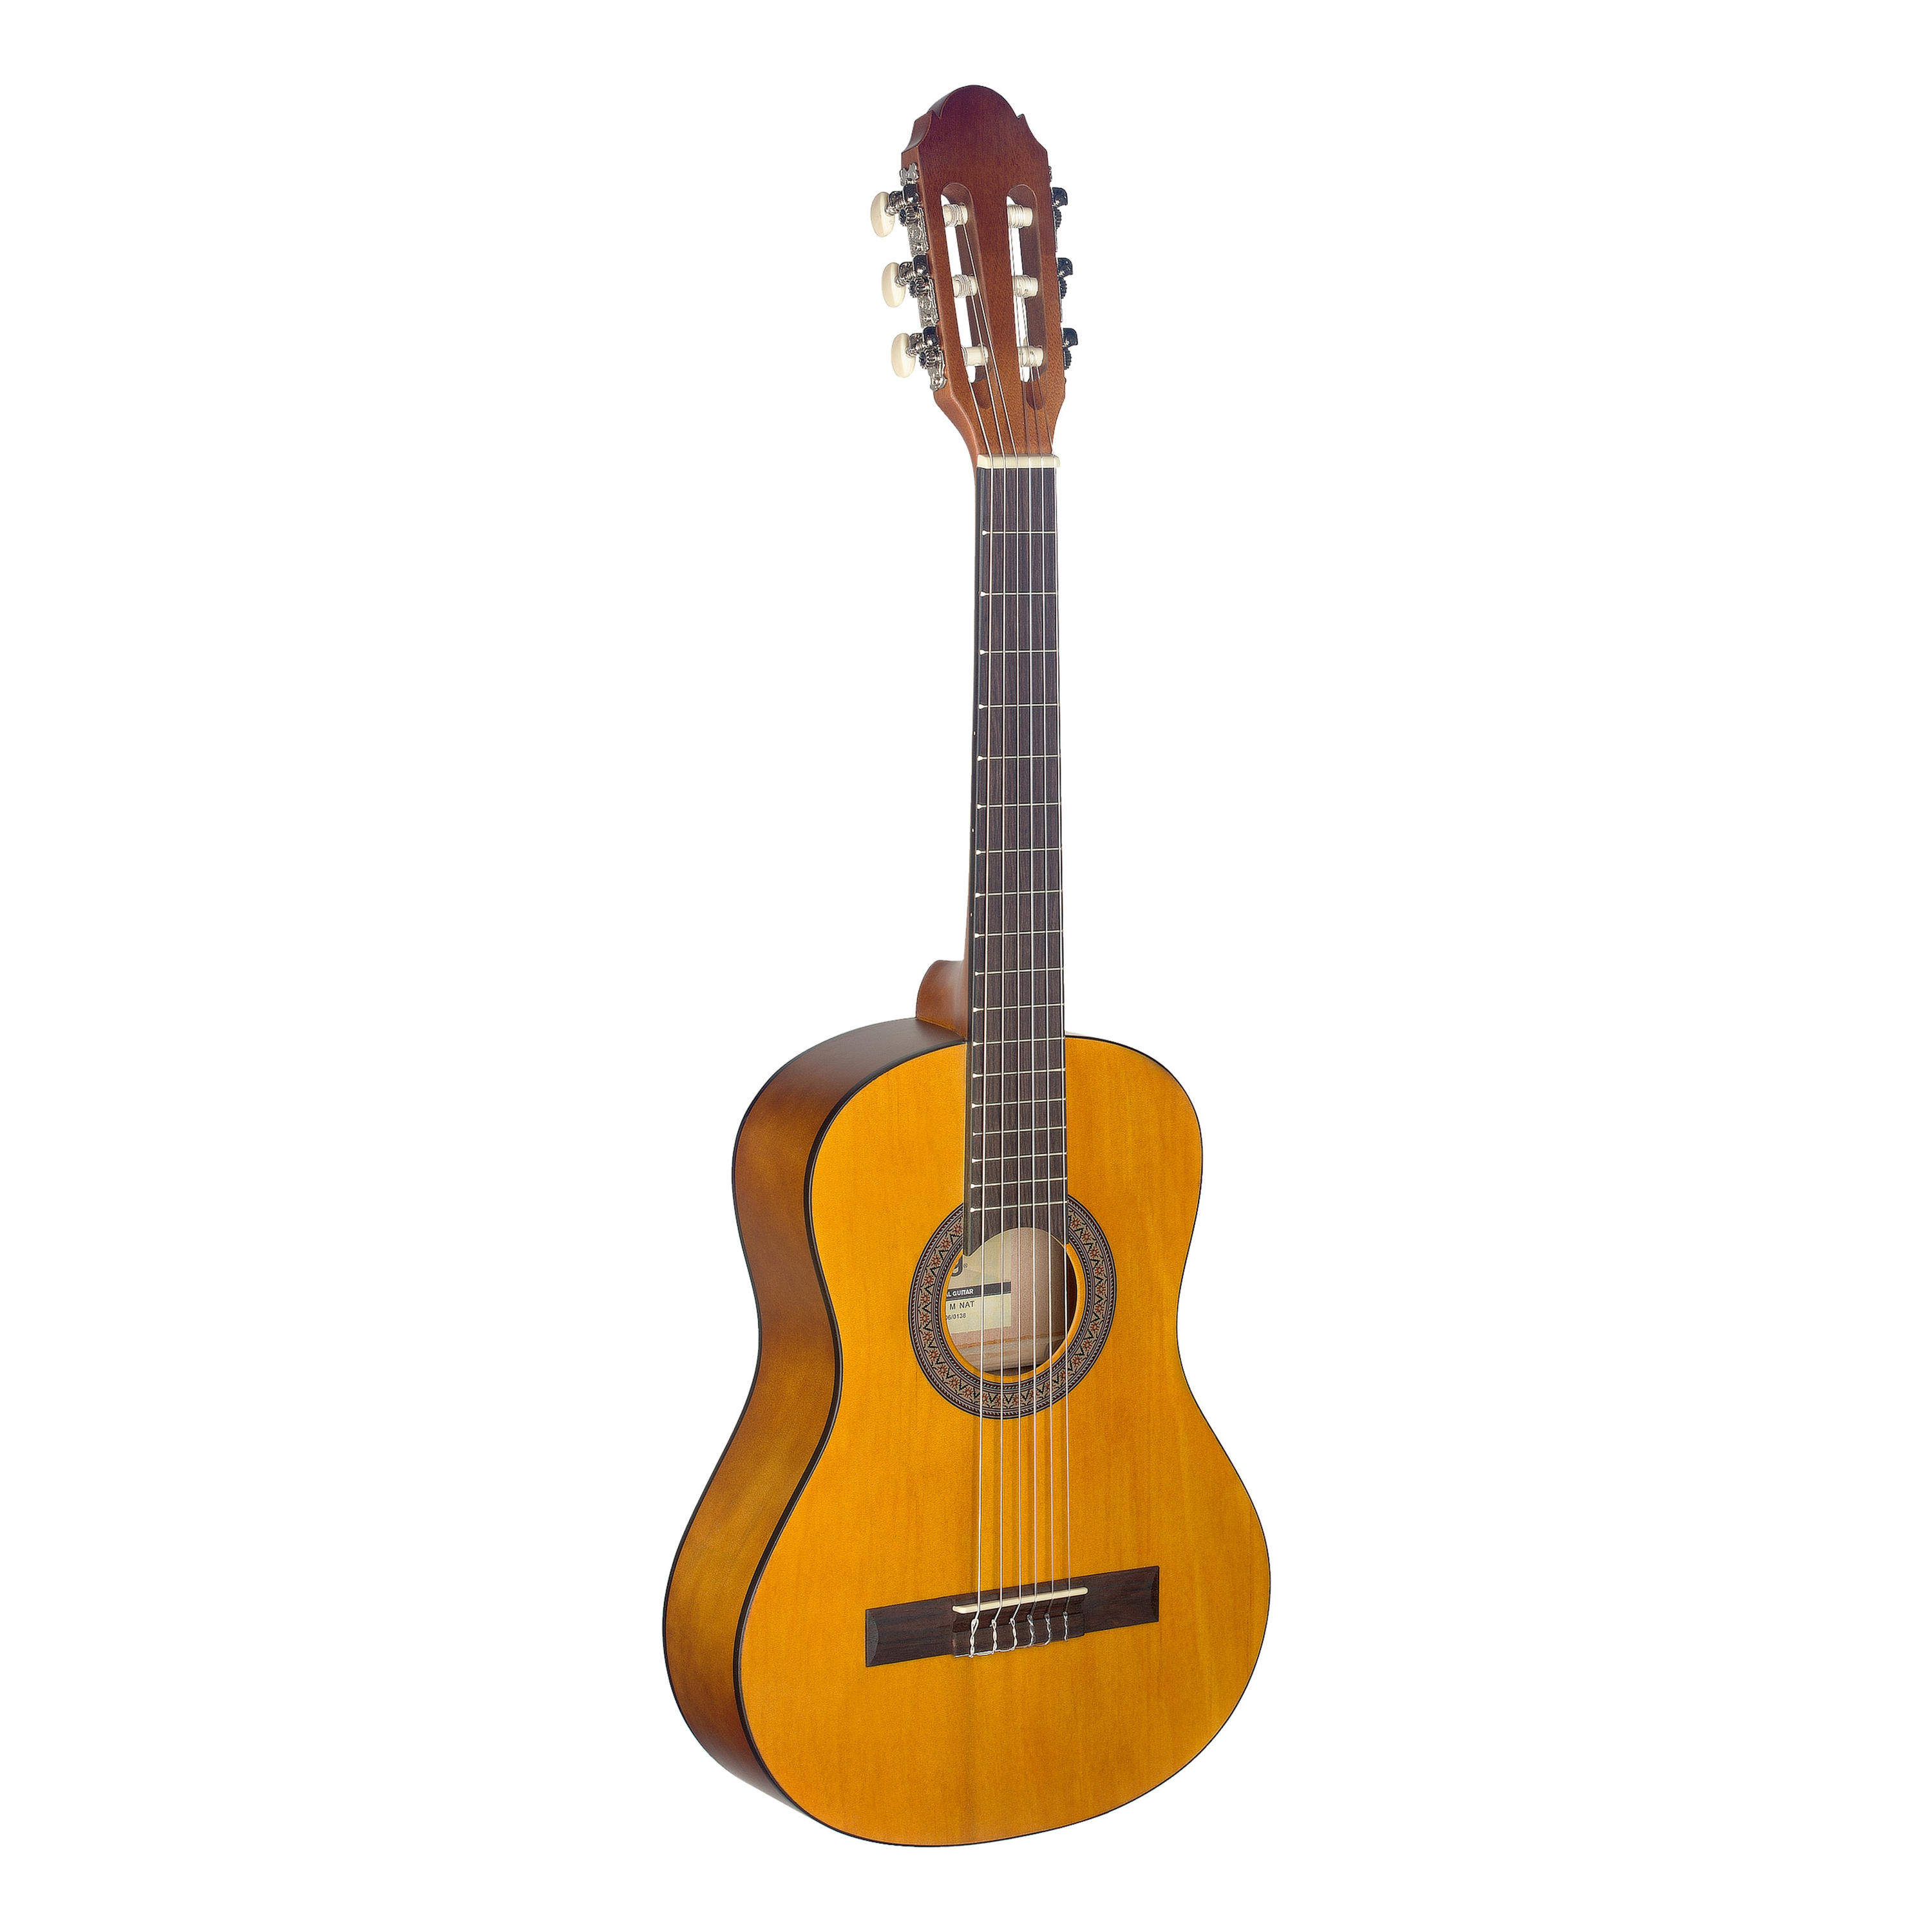 Stagg C410 M NAT 1/2 natural-coloured classical guitar with Bag